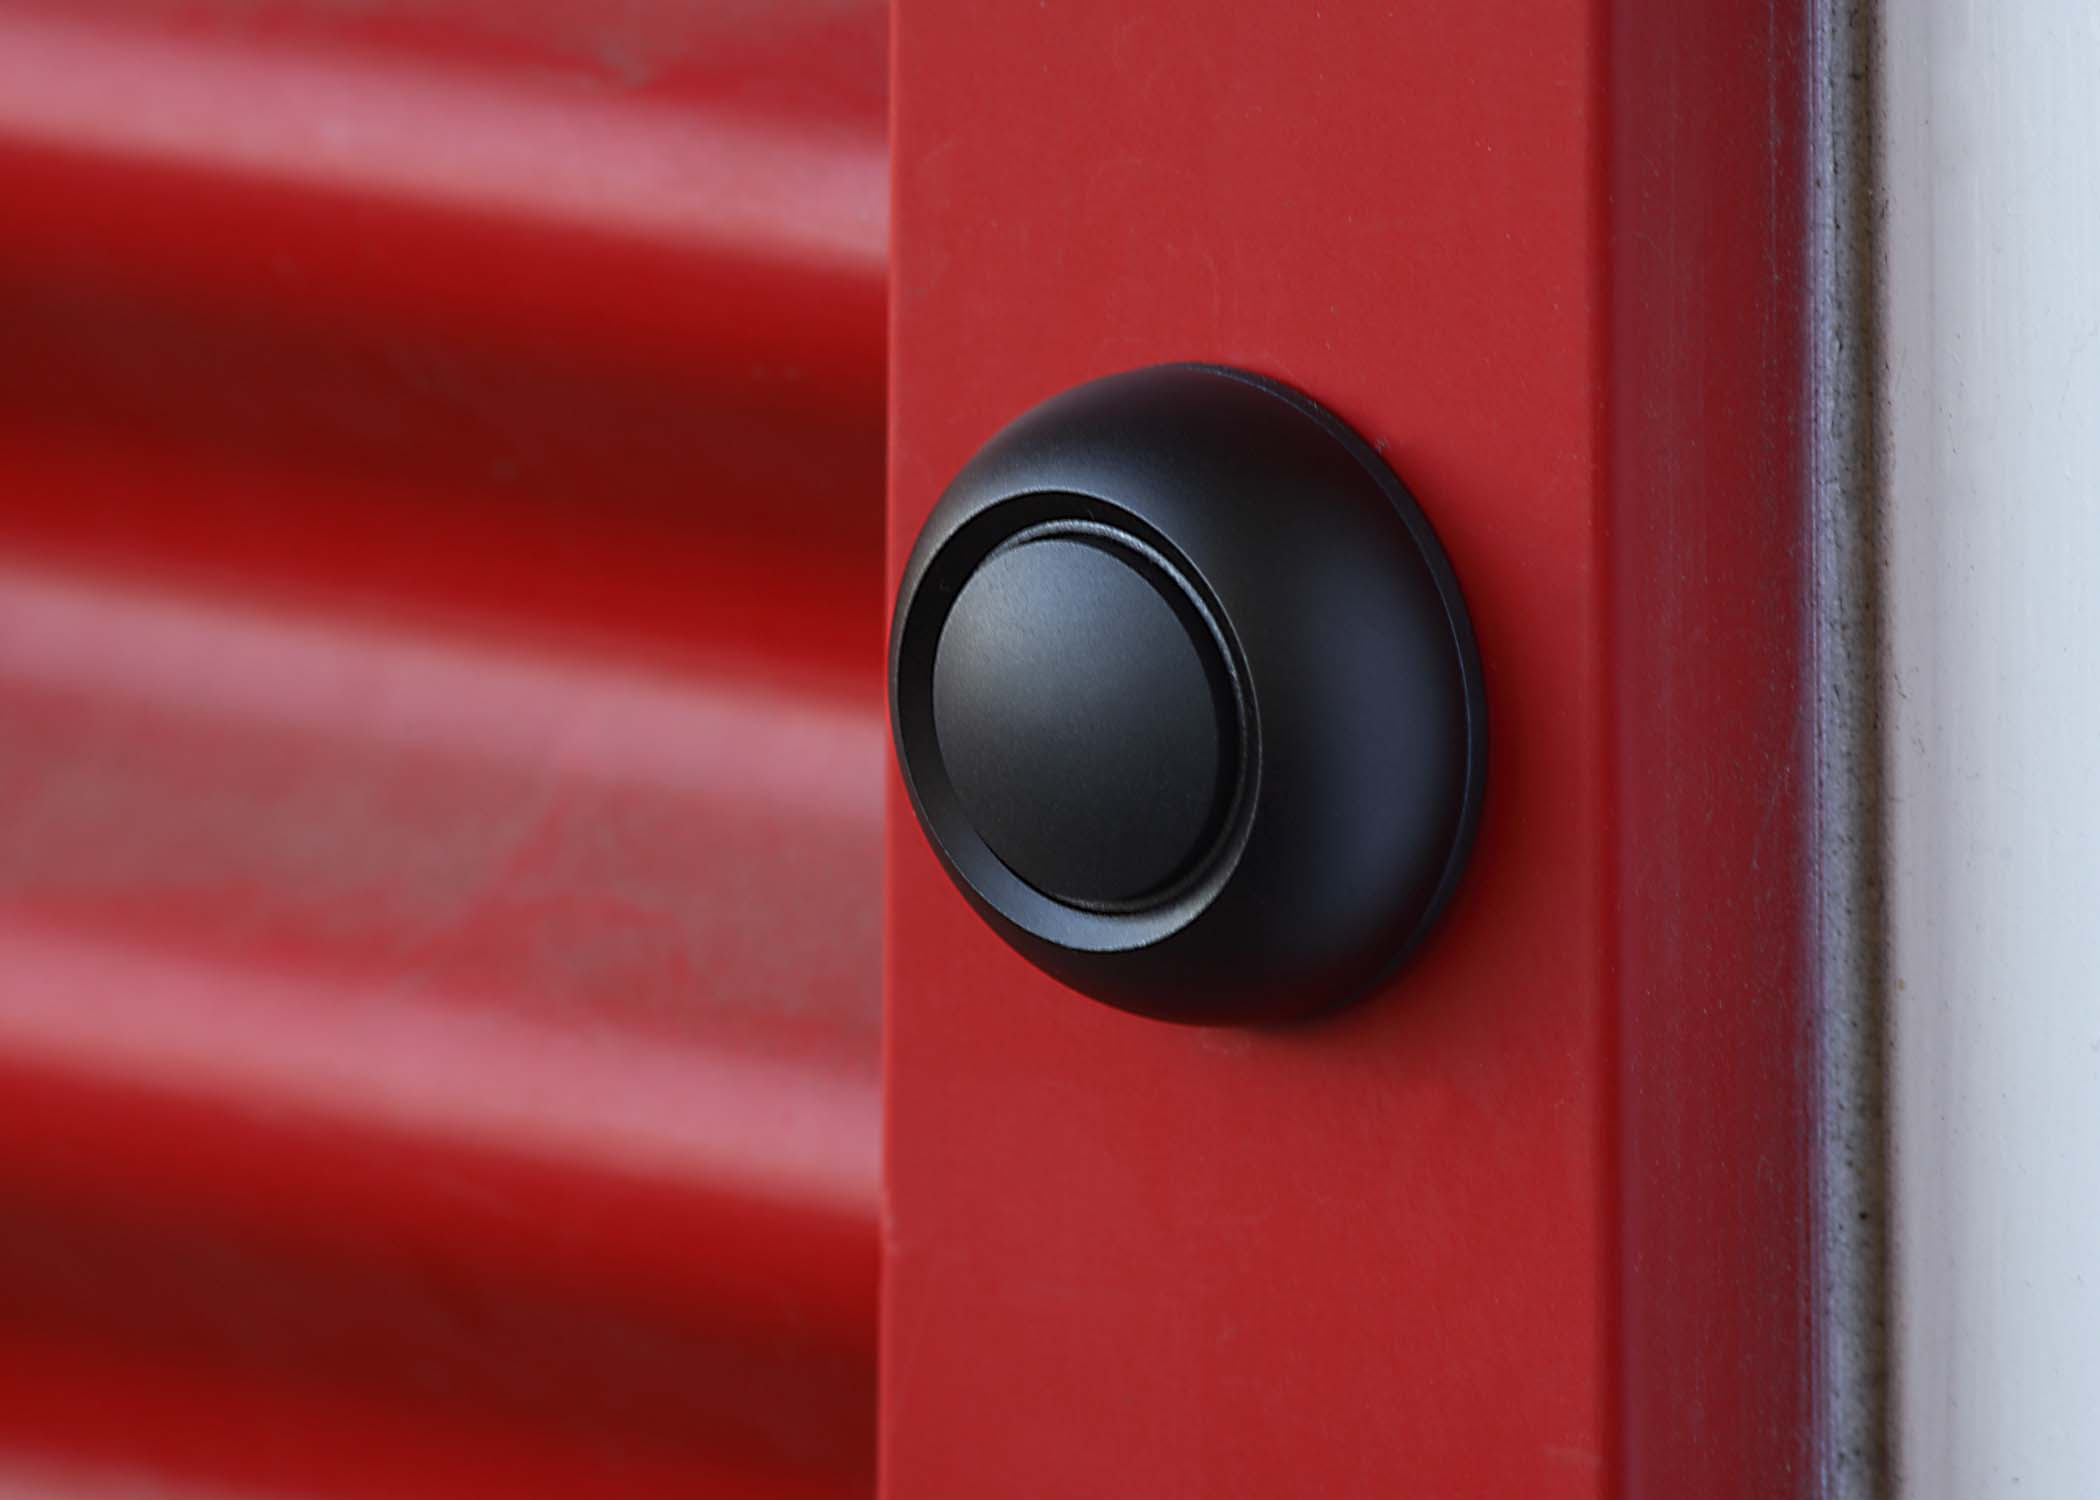 Seattle Designer Introduces New Modern Doorbell On For Home True Illuminated